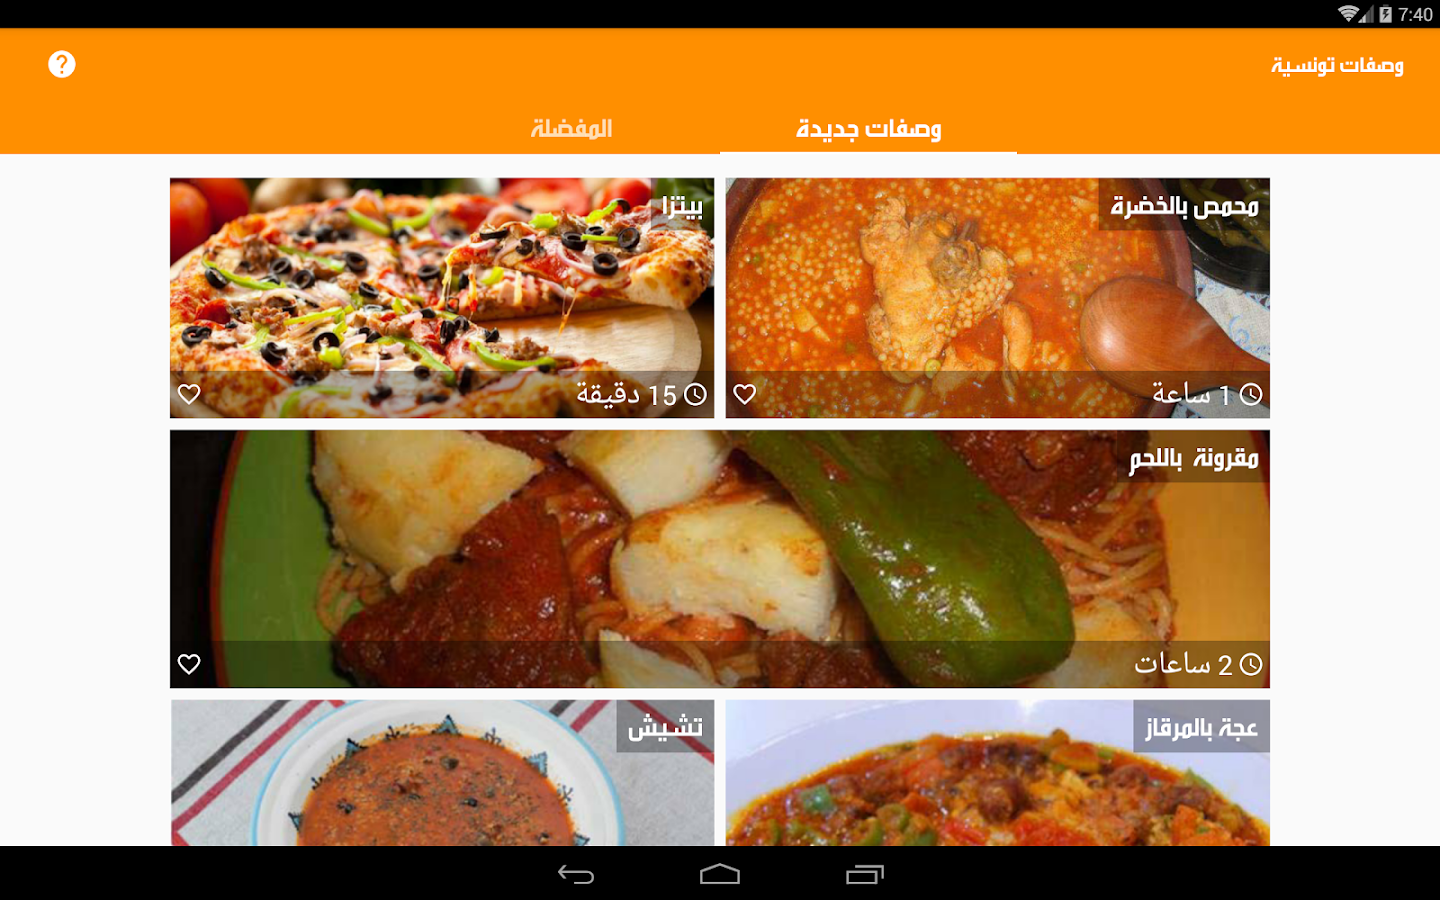 Cuisine Tunisienne Facile Applications Android Sur Google Play - Cuisine tunisienne facile